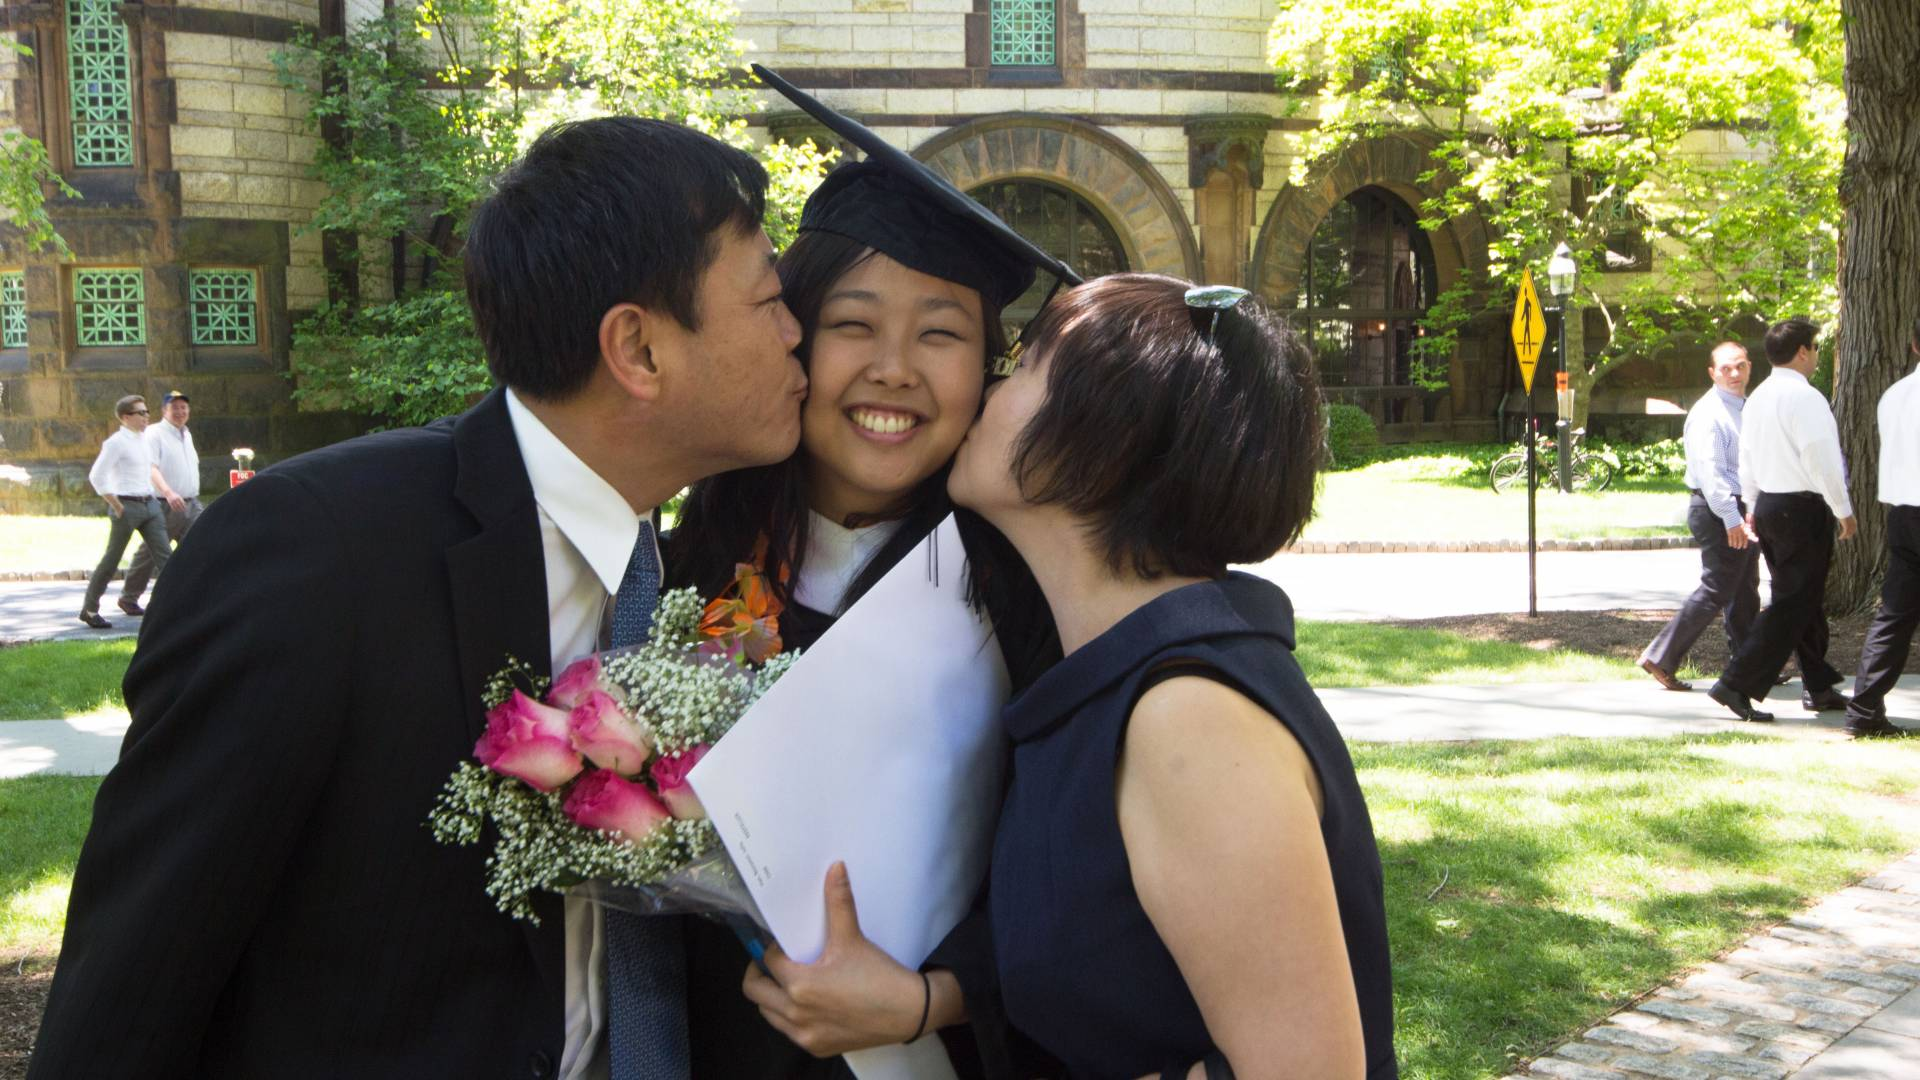 Photo of Parents congratulating their daughter at Commencement with a kiss